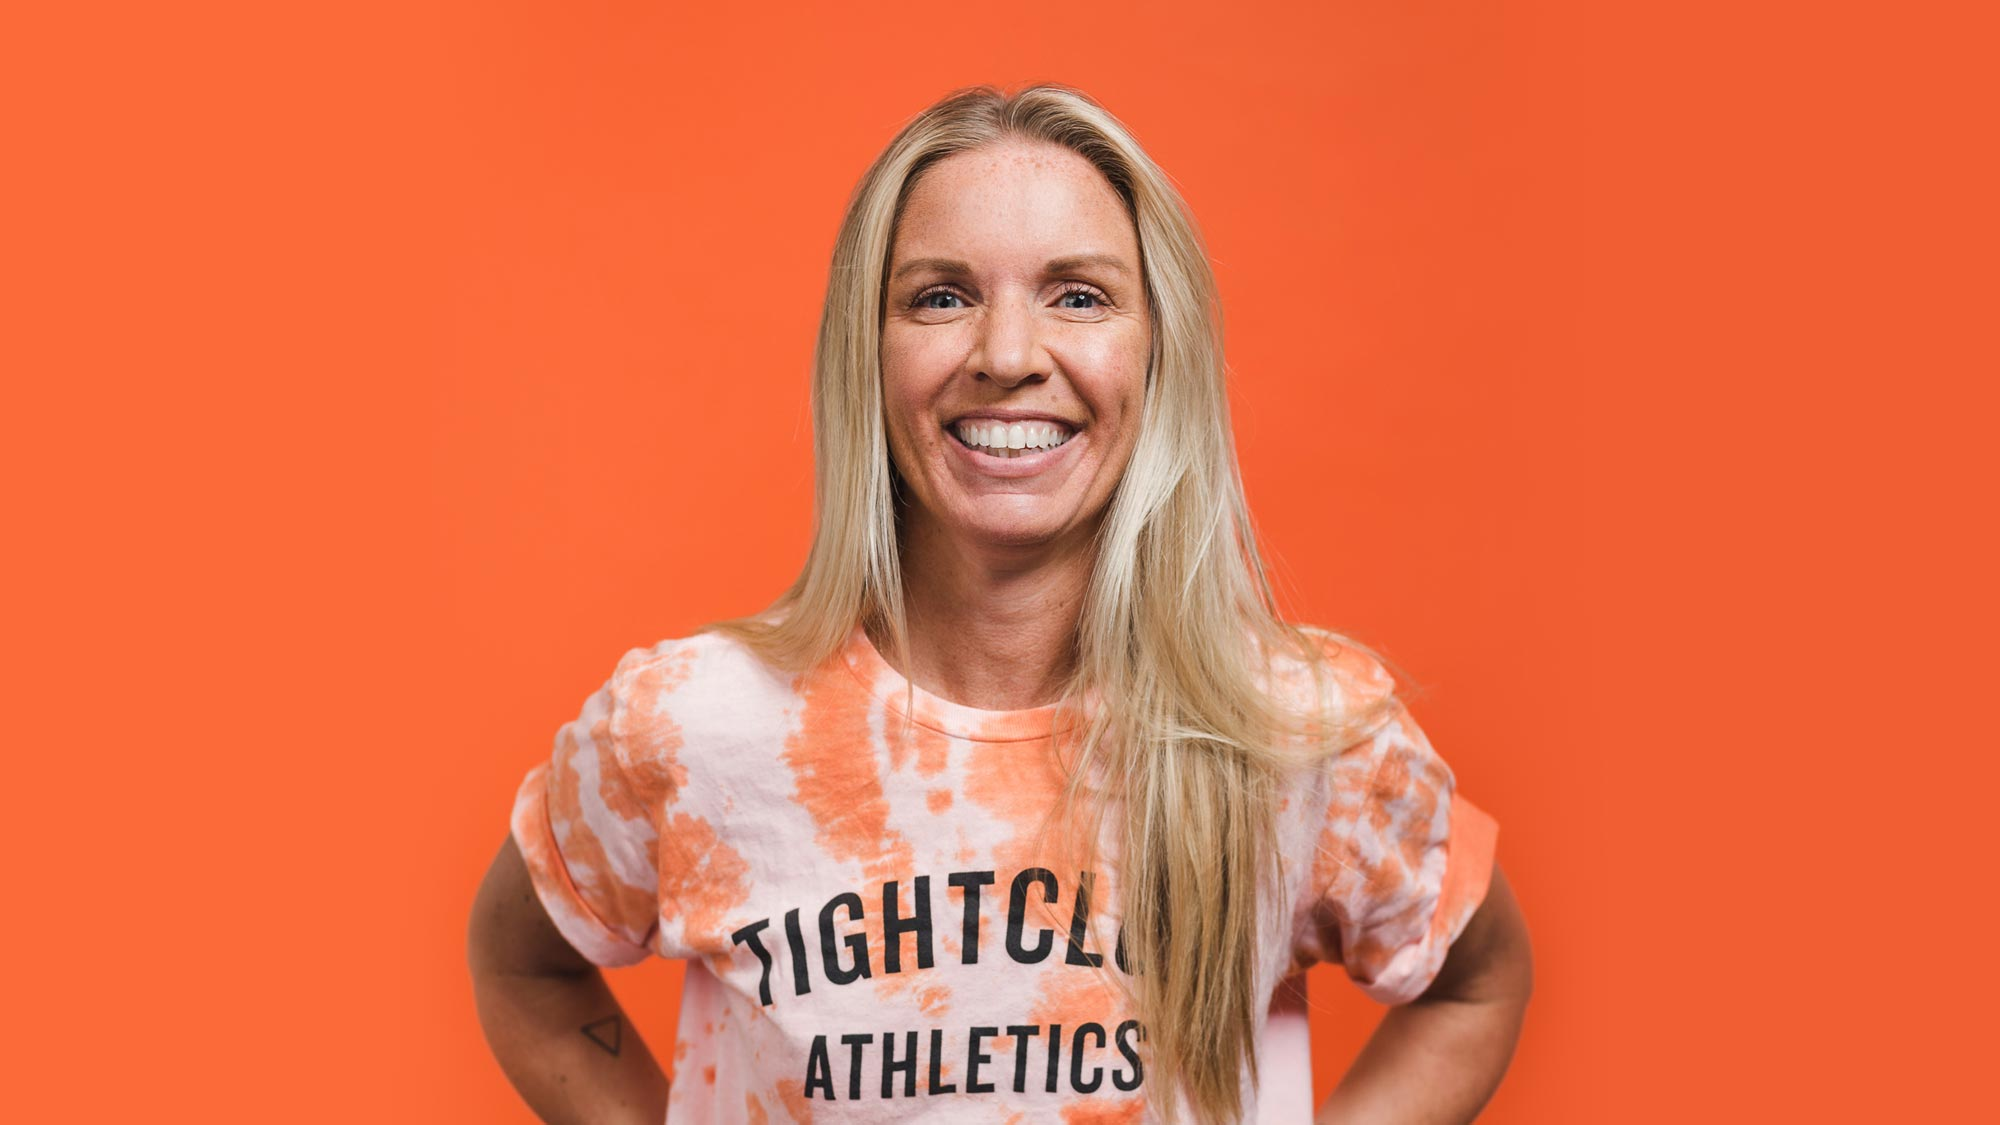 Tight Club Athletics - Nat Taylor - Team Coach. She/Her.